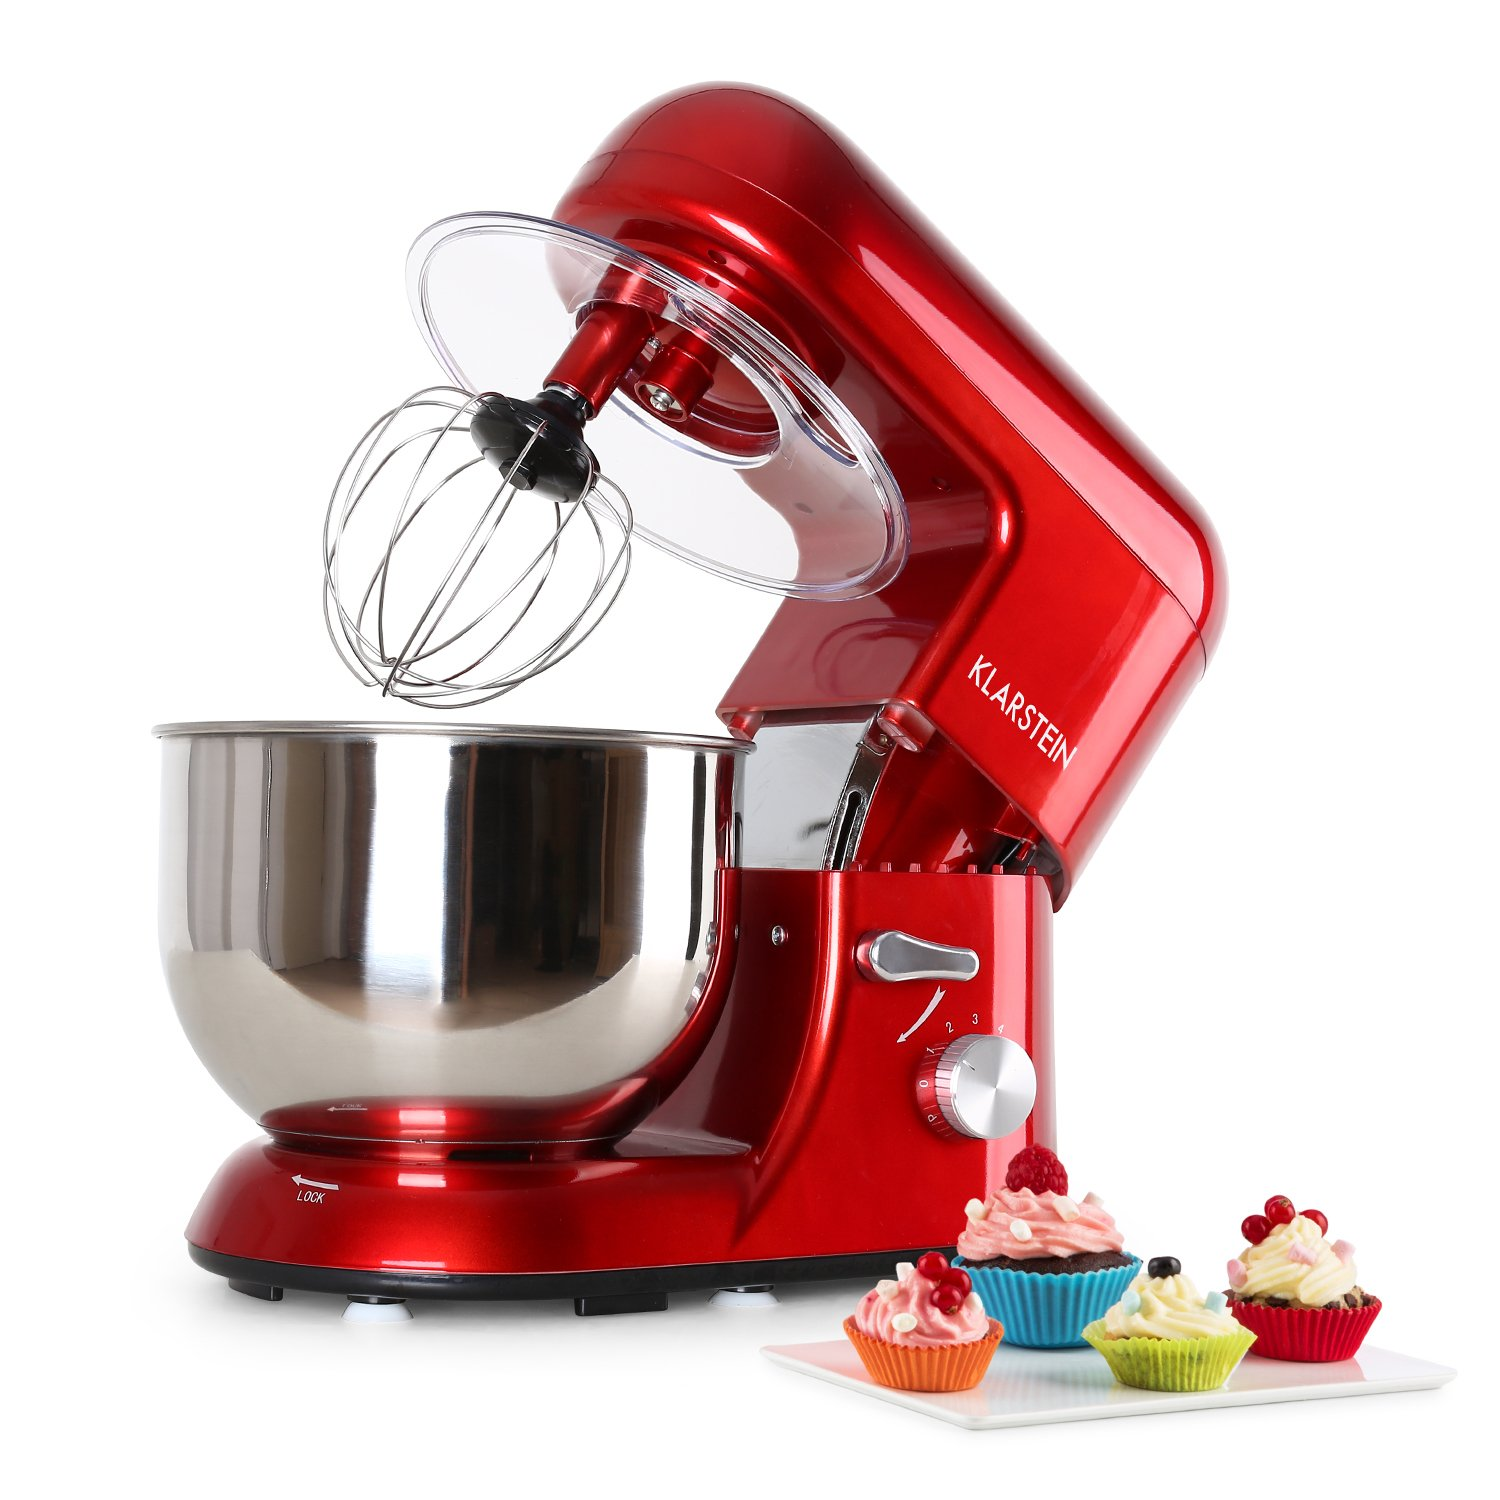 KLARSTEIN Bella Rossa • Tilt-Head Stand Mixer • Dough Hook, Flat Beater, Wire Whip • 650 W • 5.5 qt Stainless Steel Bowl • Planetary Mixing • 6 Speeds • Red by KLARSTEIN